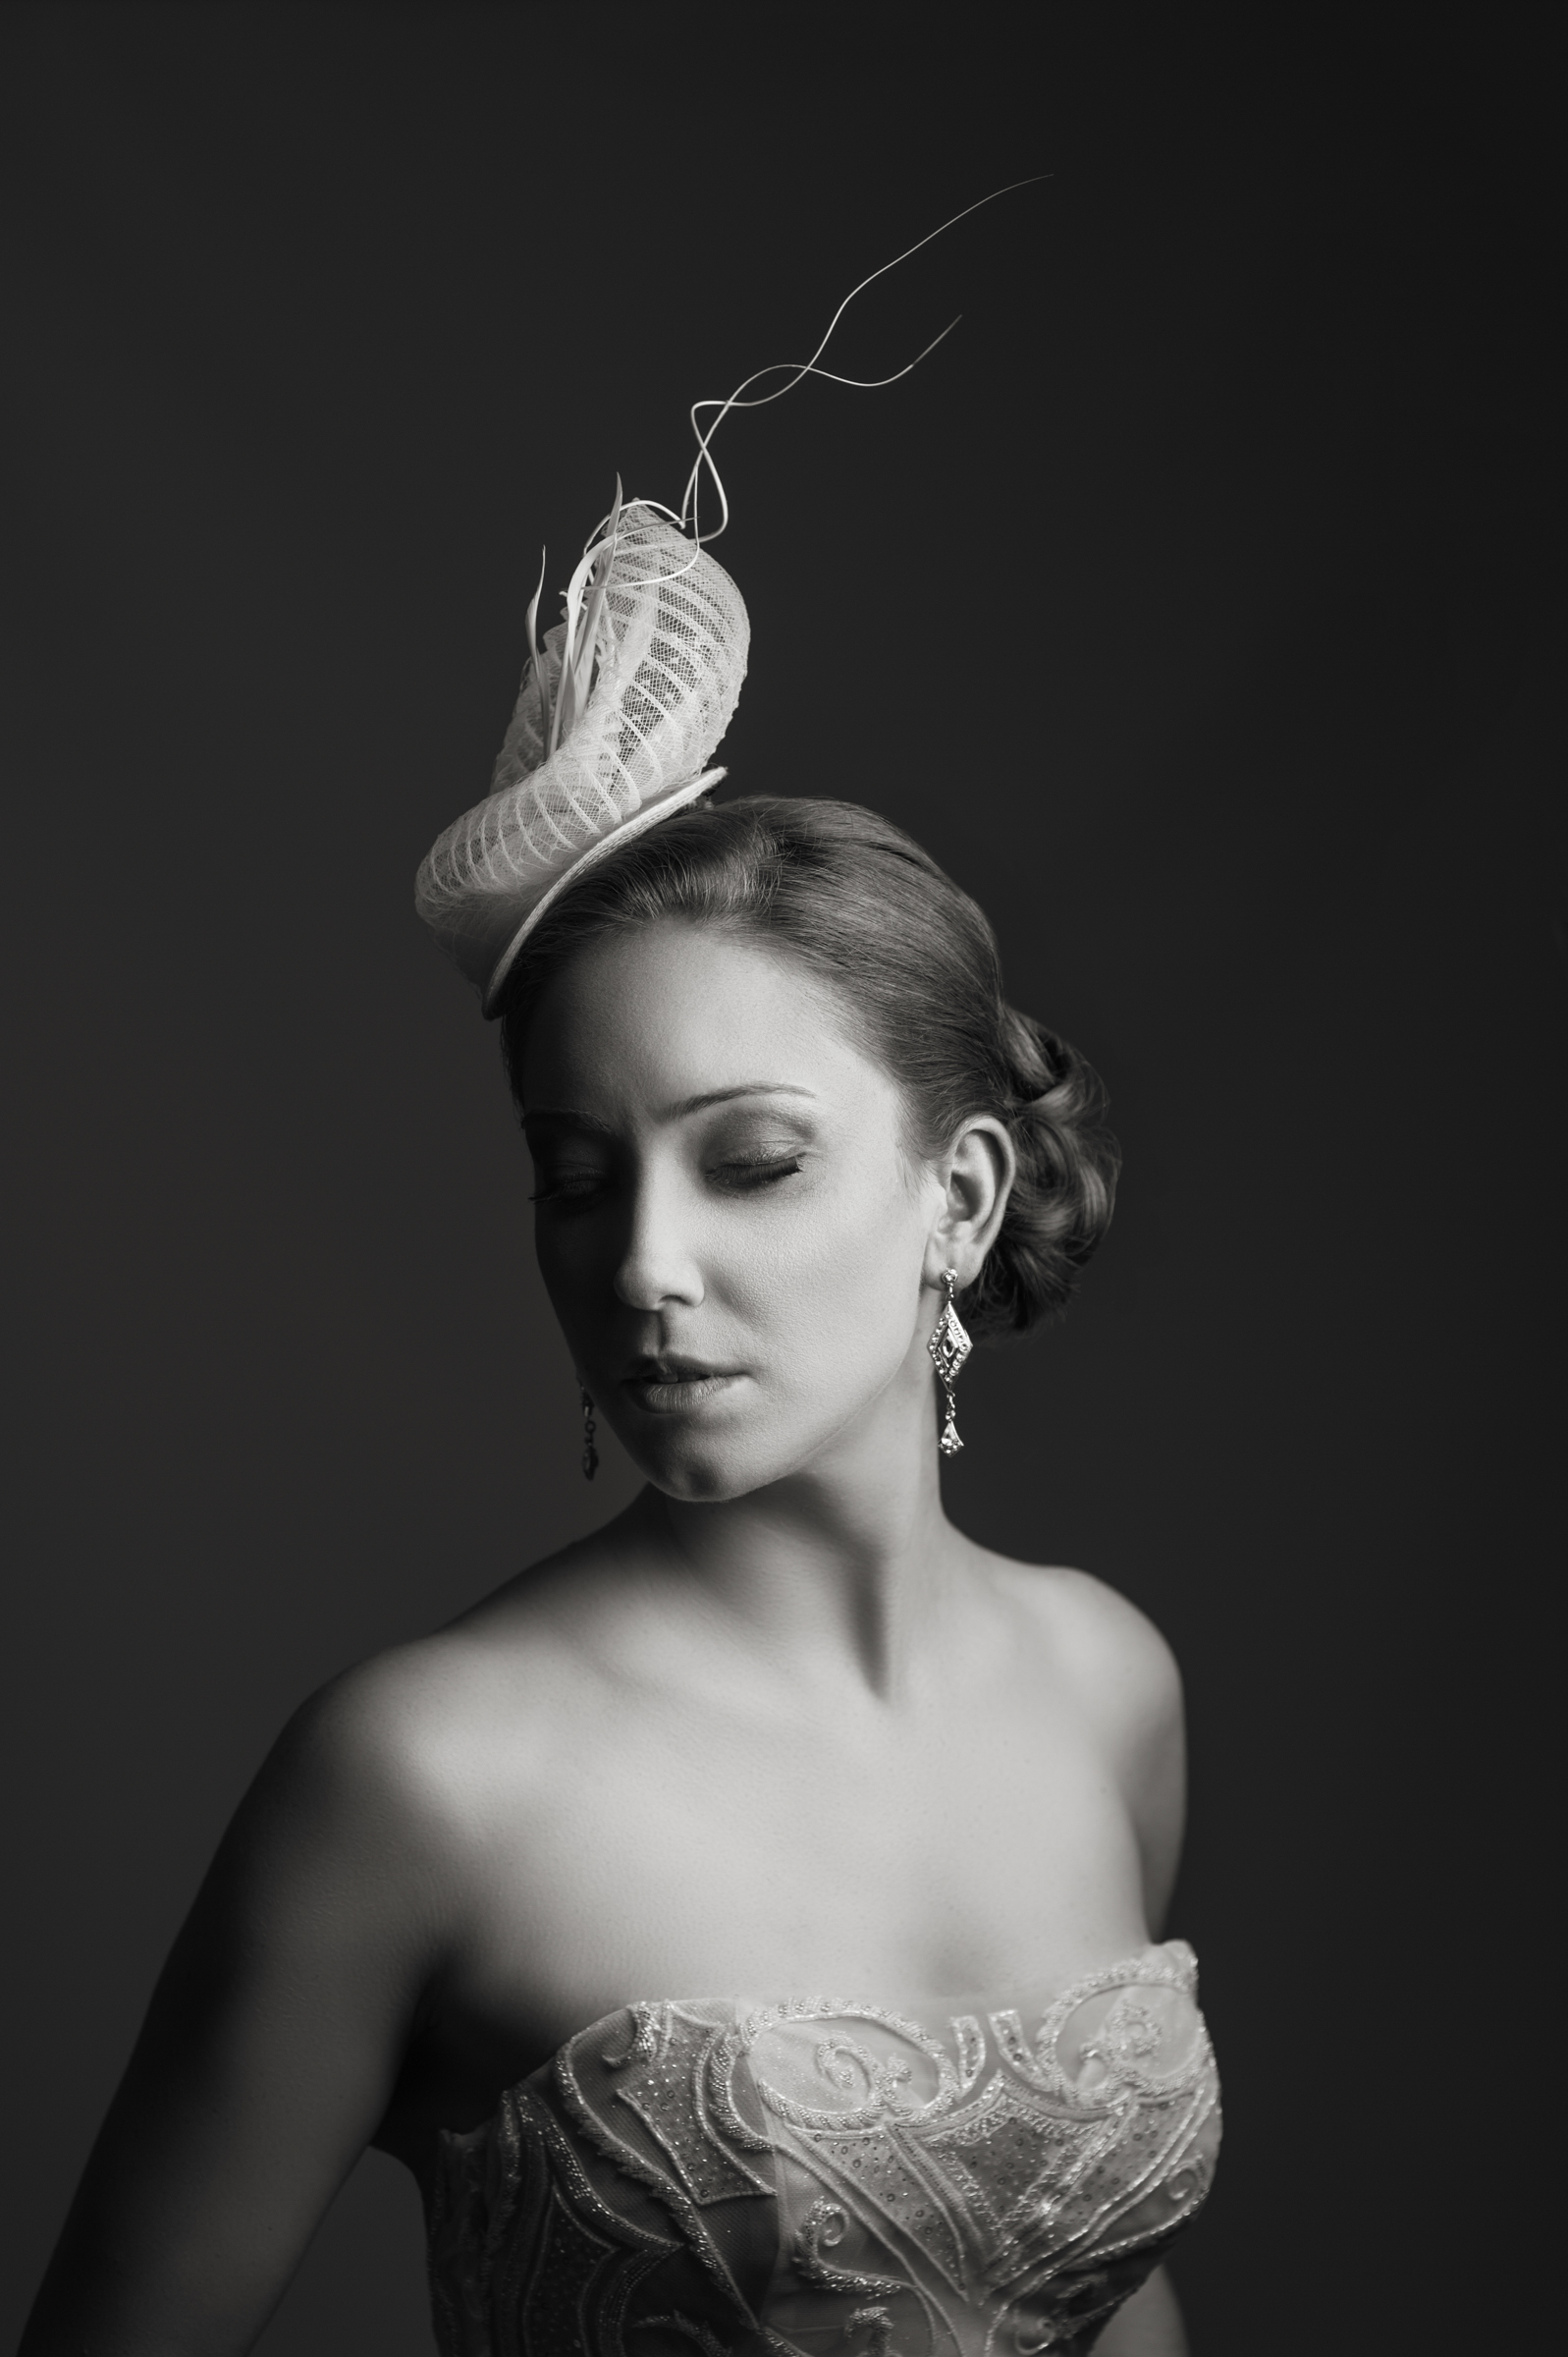 bride-with-fascinator-photography-by-steve-jane